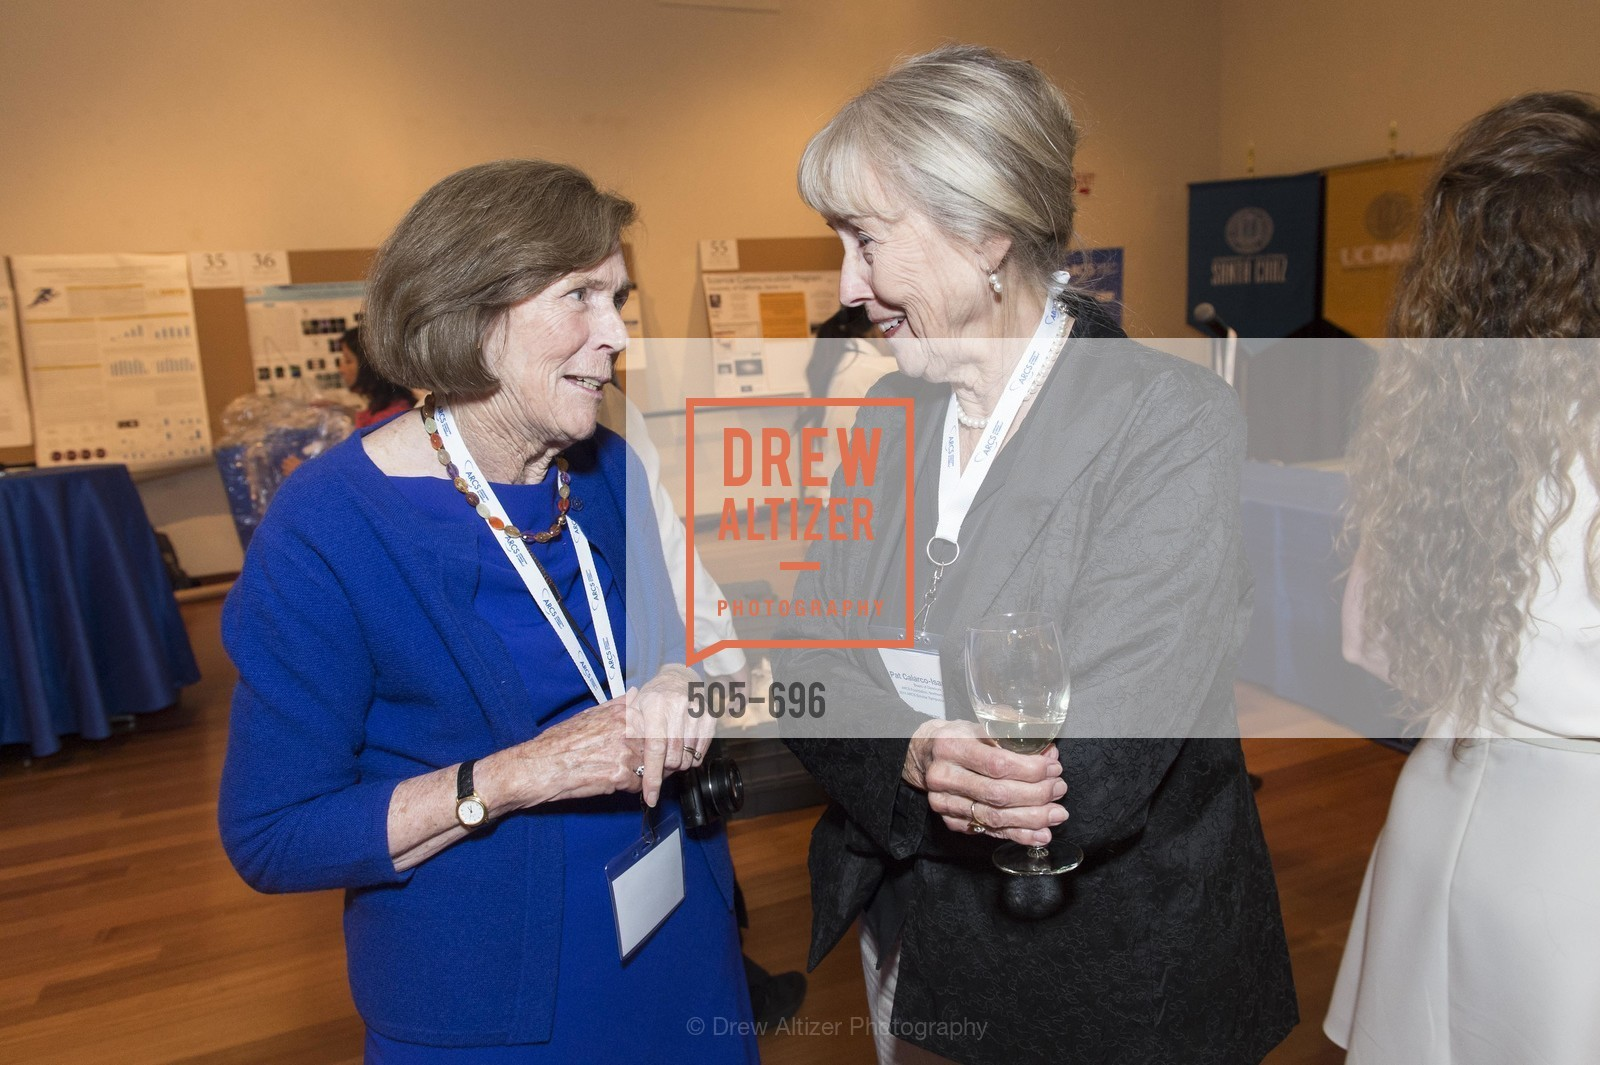 Barbara Glynn, Pat Calarco, ARCS FOUNDATION Scholar Symposium, US, May 4th, 2015,Drew Altizer, Drew Altizer Photography, full-service agency, private events, San Francisco photographer, photographer california